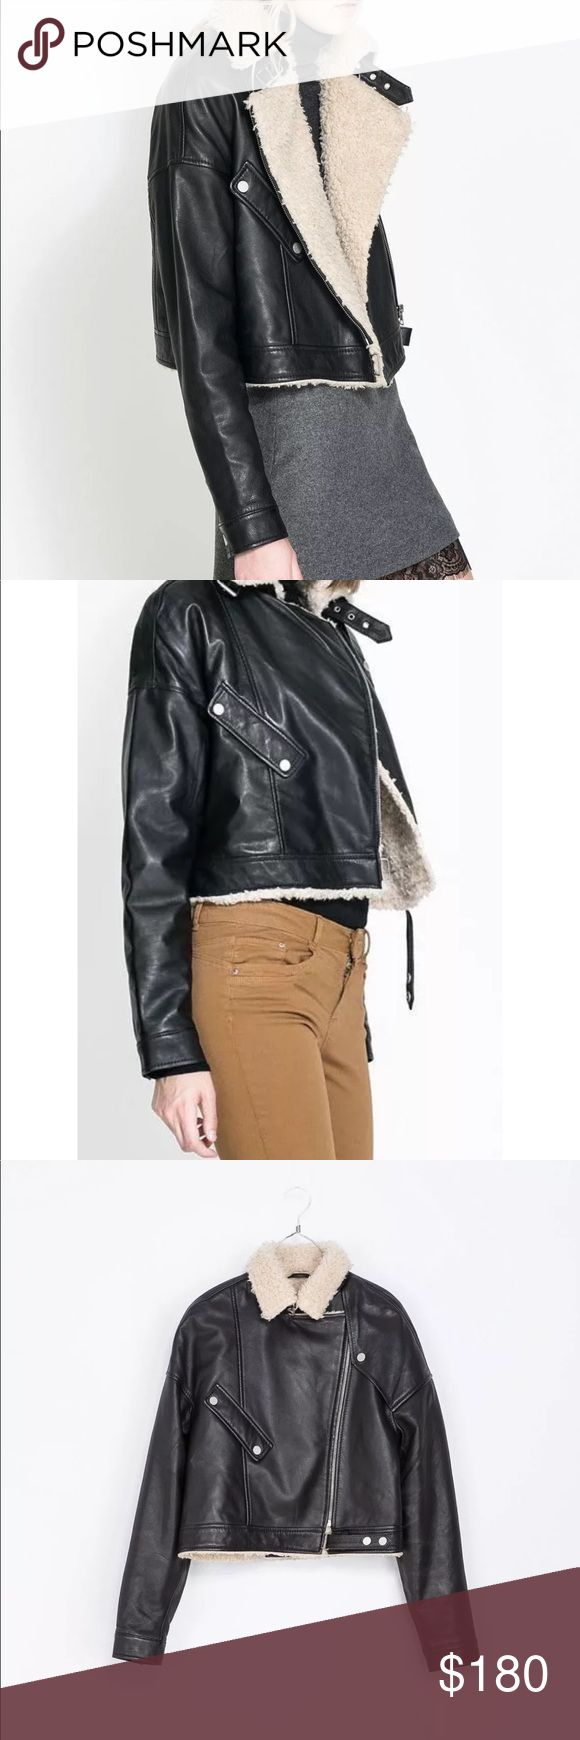 Brand new Zara Trafulic sheepskin real leather Brand new never worn no tags. Super soft real leather, lined with real sheepskin fur. Biker style jacket. Zara Jackets & Coats